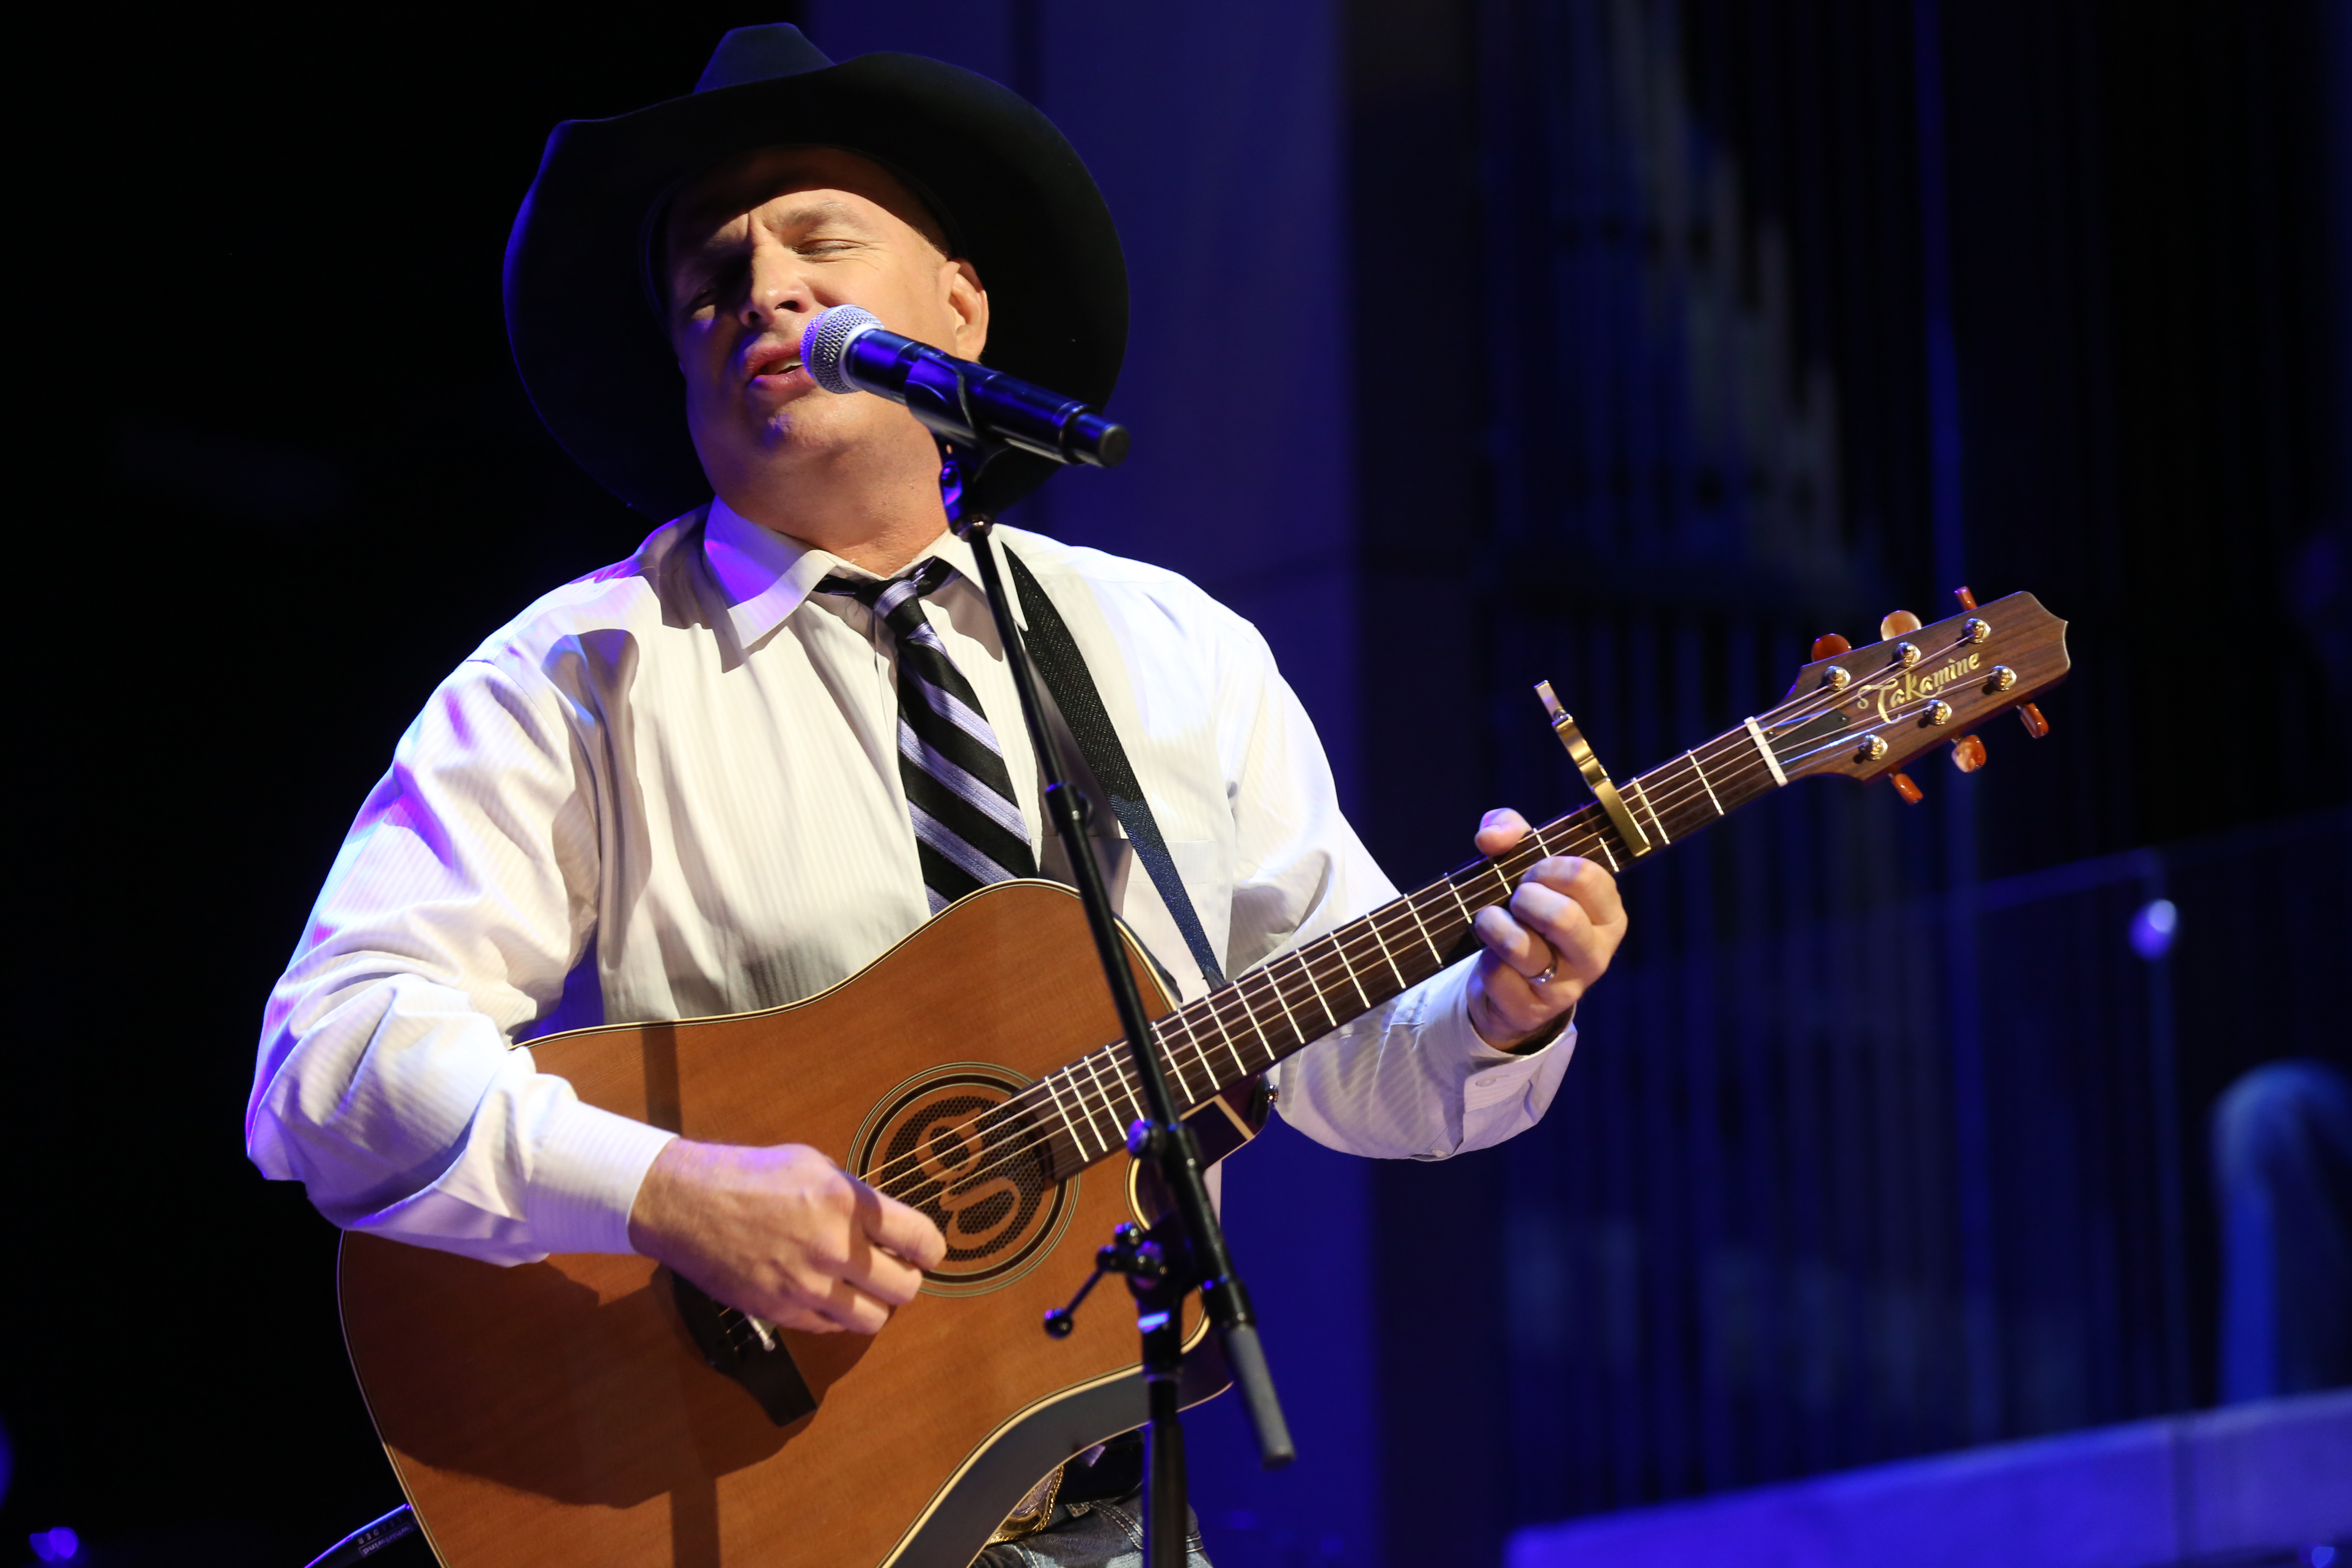 Garth Brooks shows postponed in Baltimore due to snow